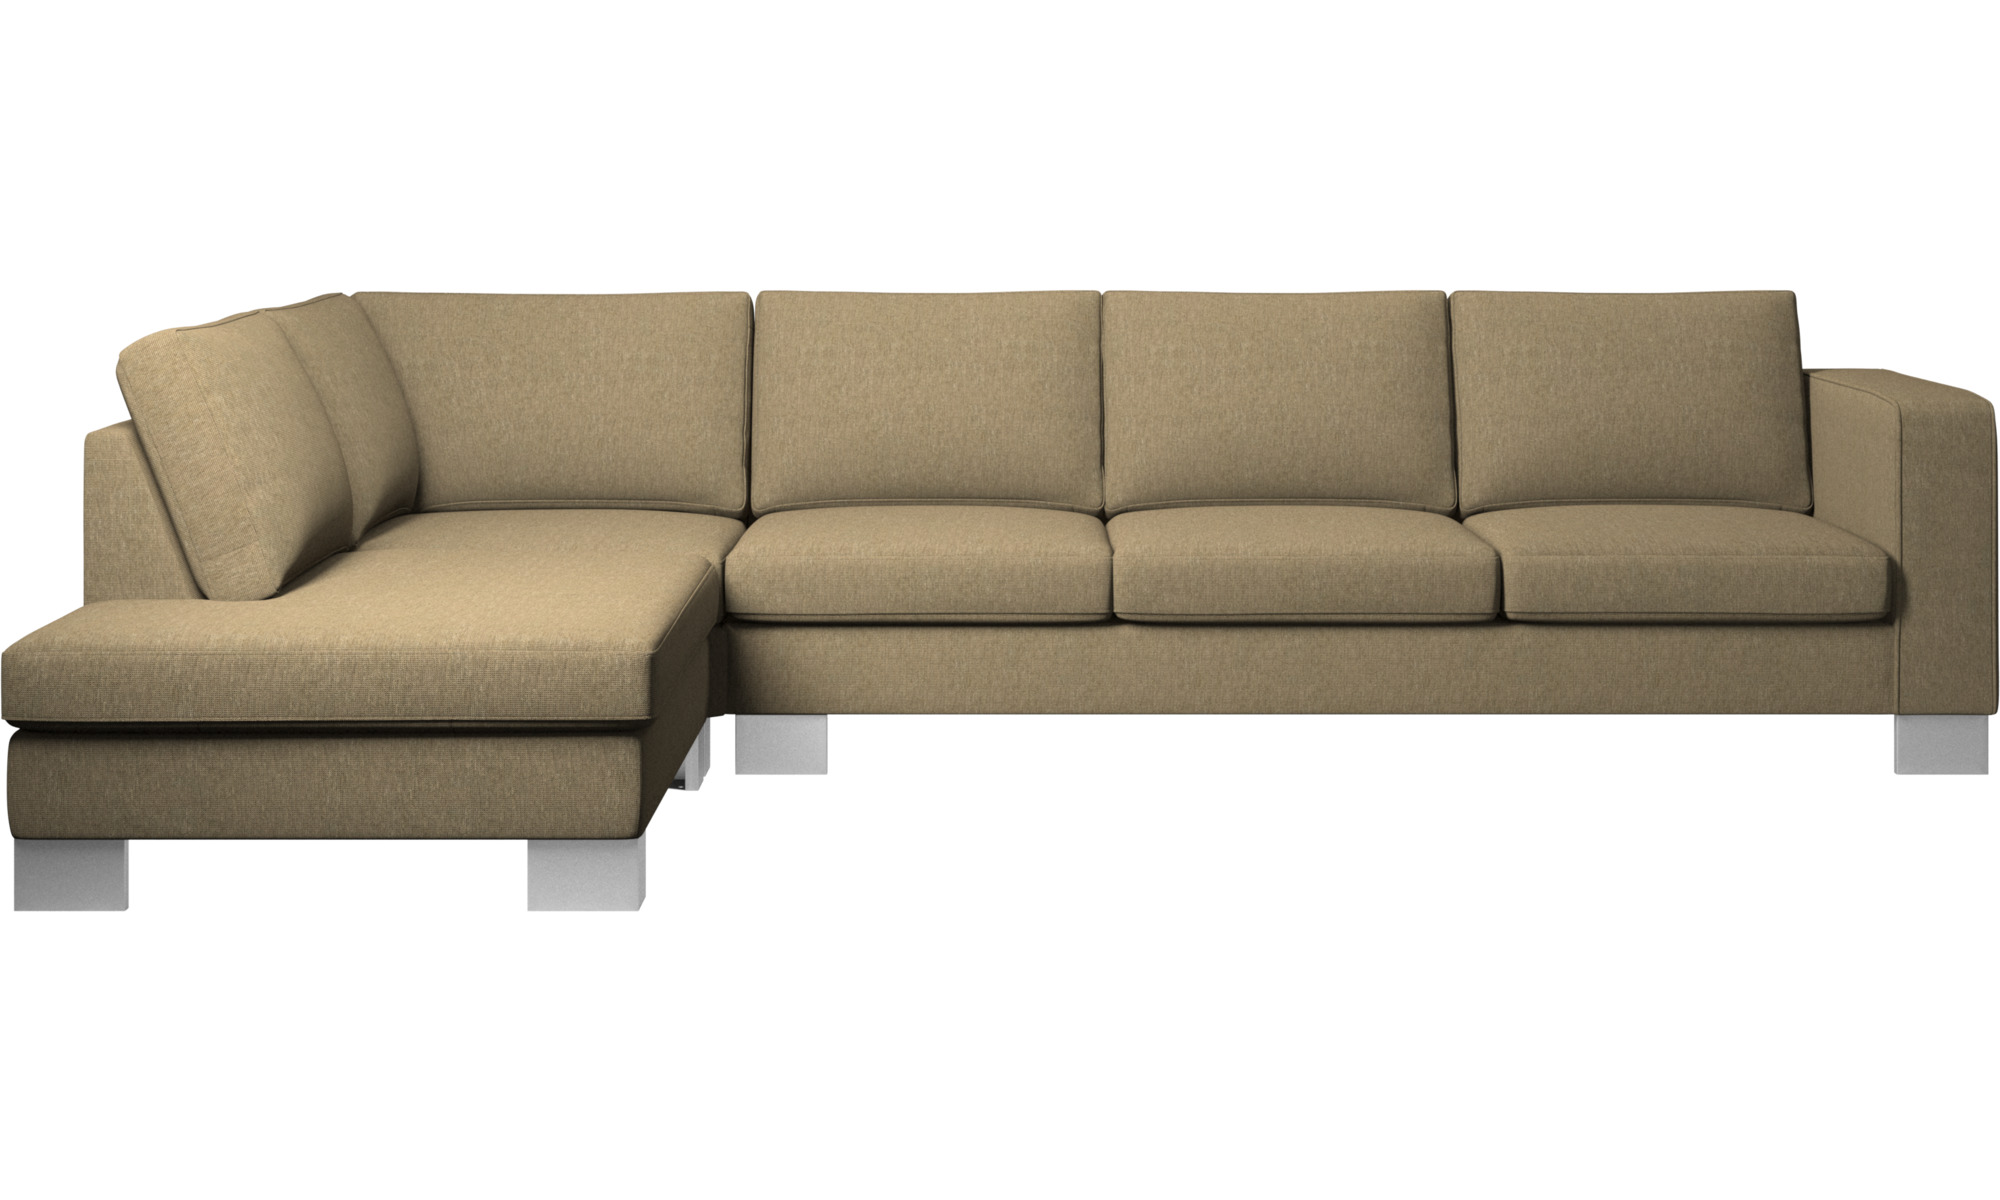 Corner Sofas Indivi 2 Corner Sofa With Lounging Unit Boconcept